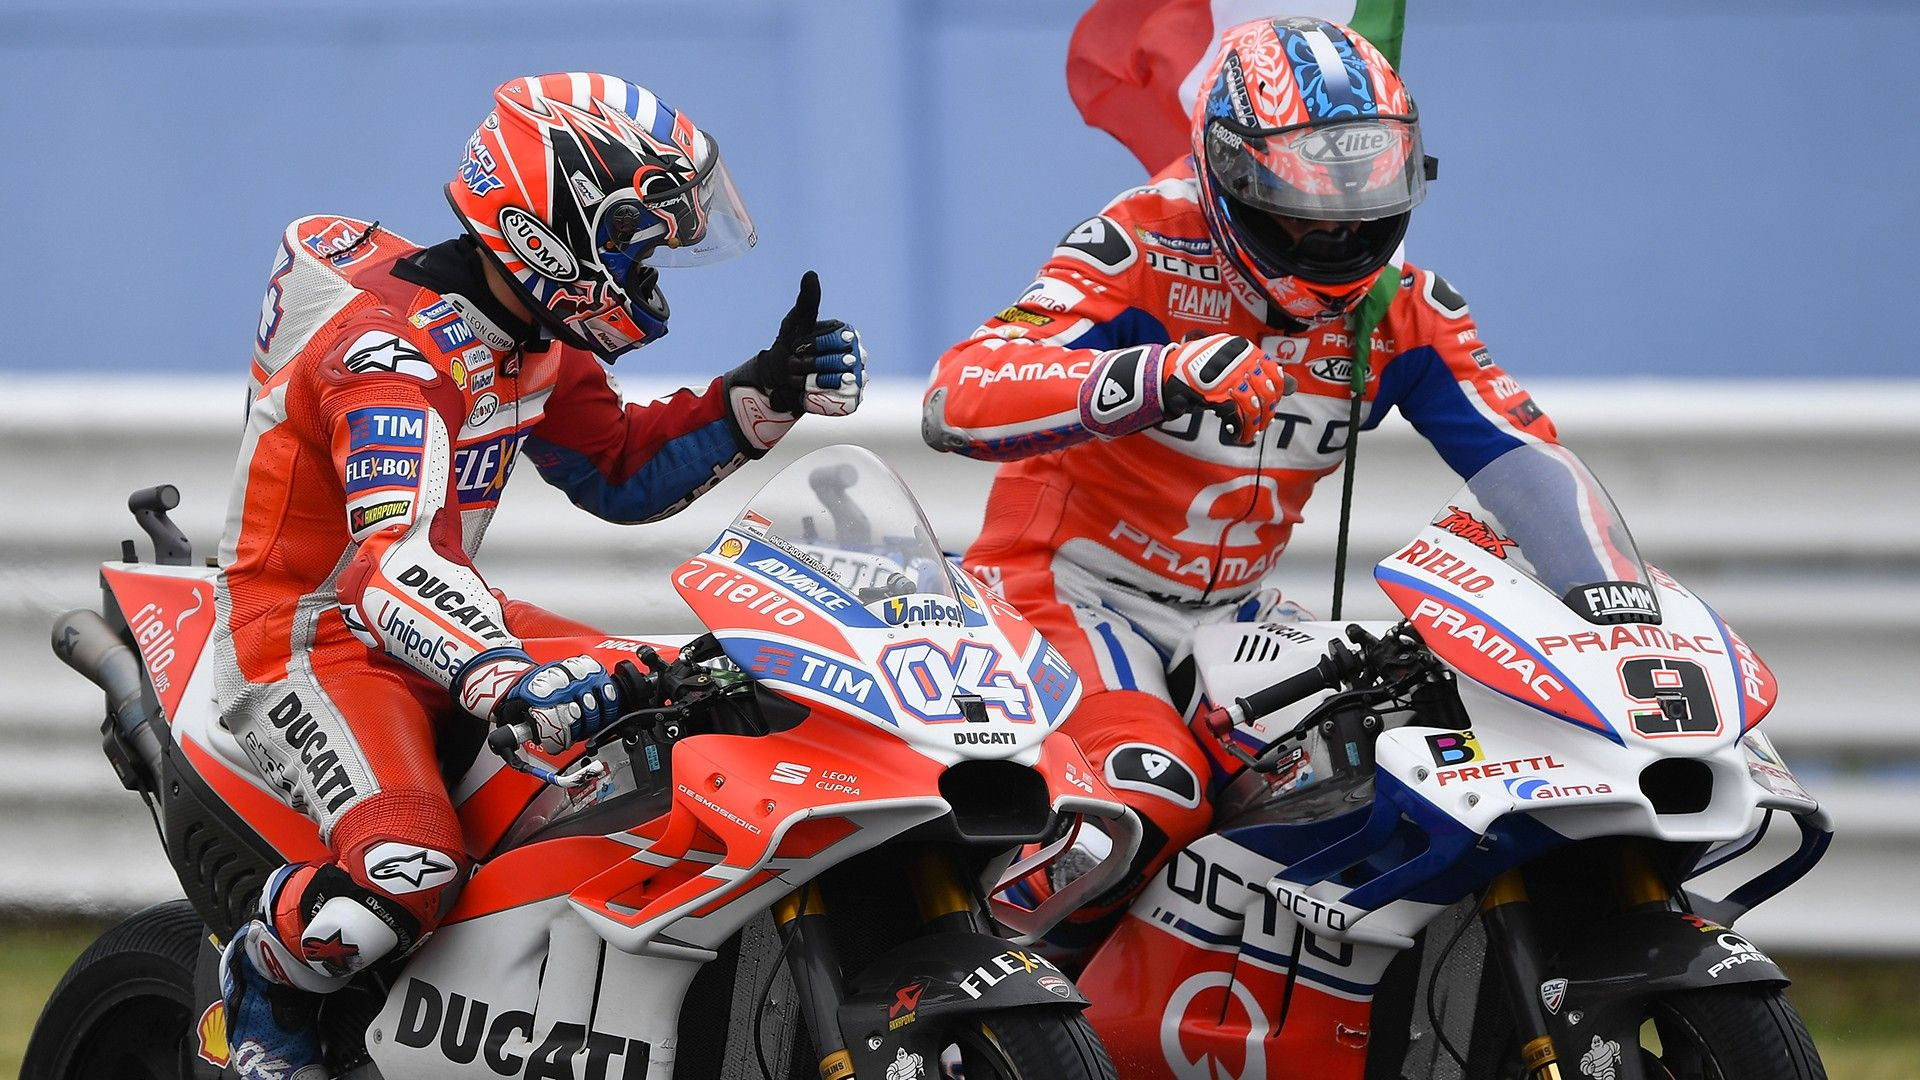 Motogear | Petrucci to factory Ducati team for 2019